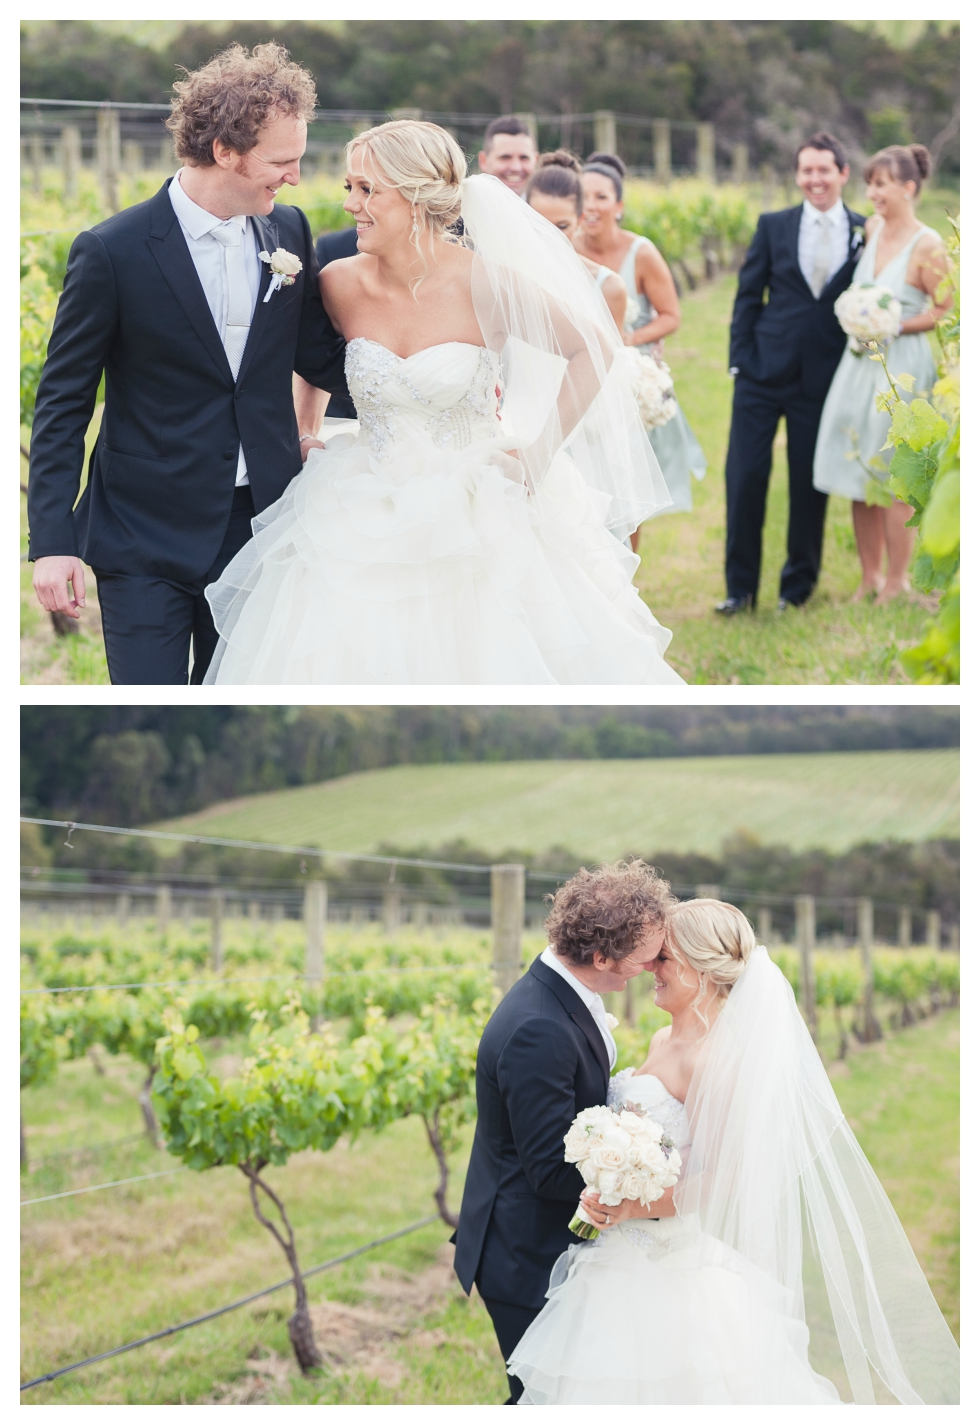 willow creek wedding, melbourne wedding photographer, mornington peninsula wedding photographer